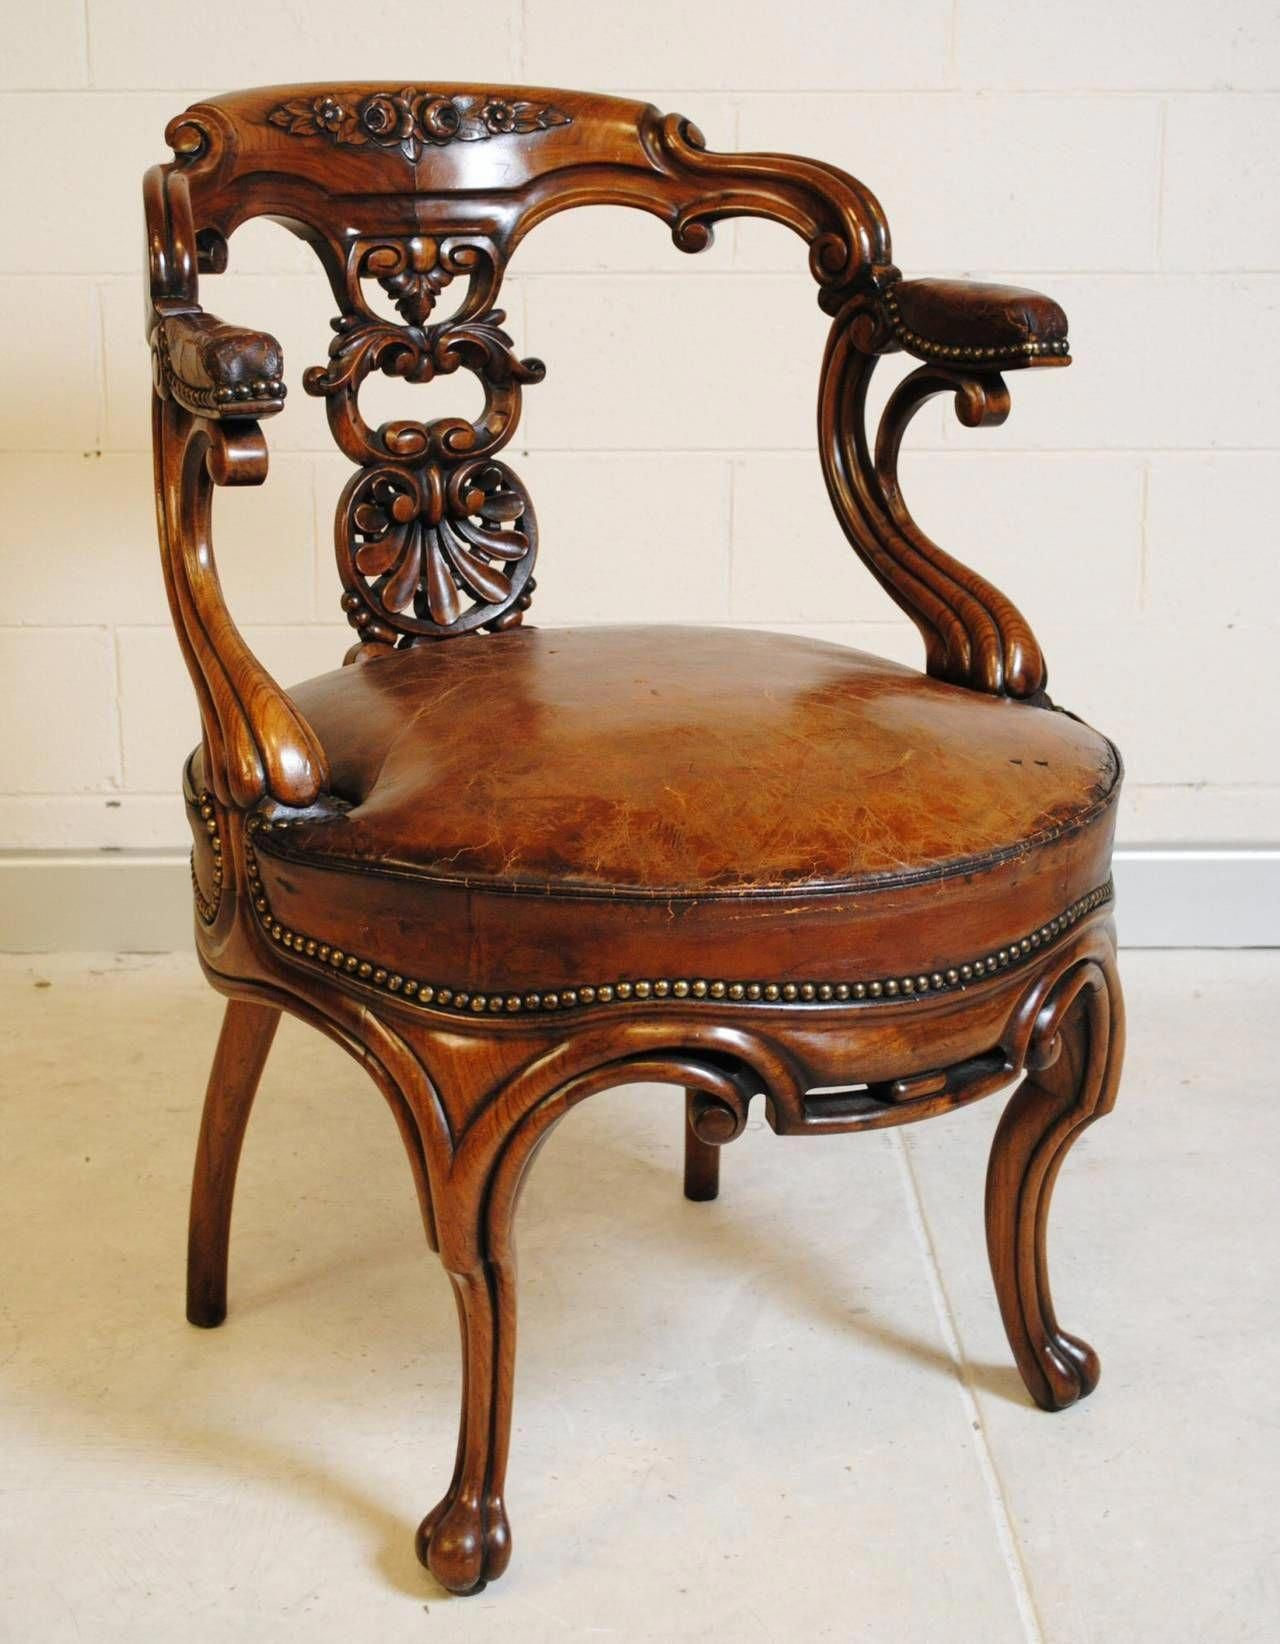 Antique Furniture Buyers Near Me Antique Furniture Wanted To Buy